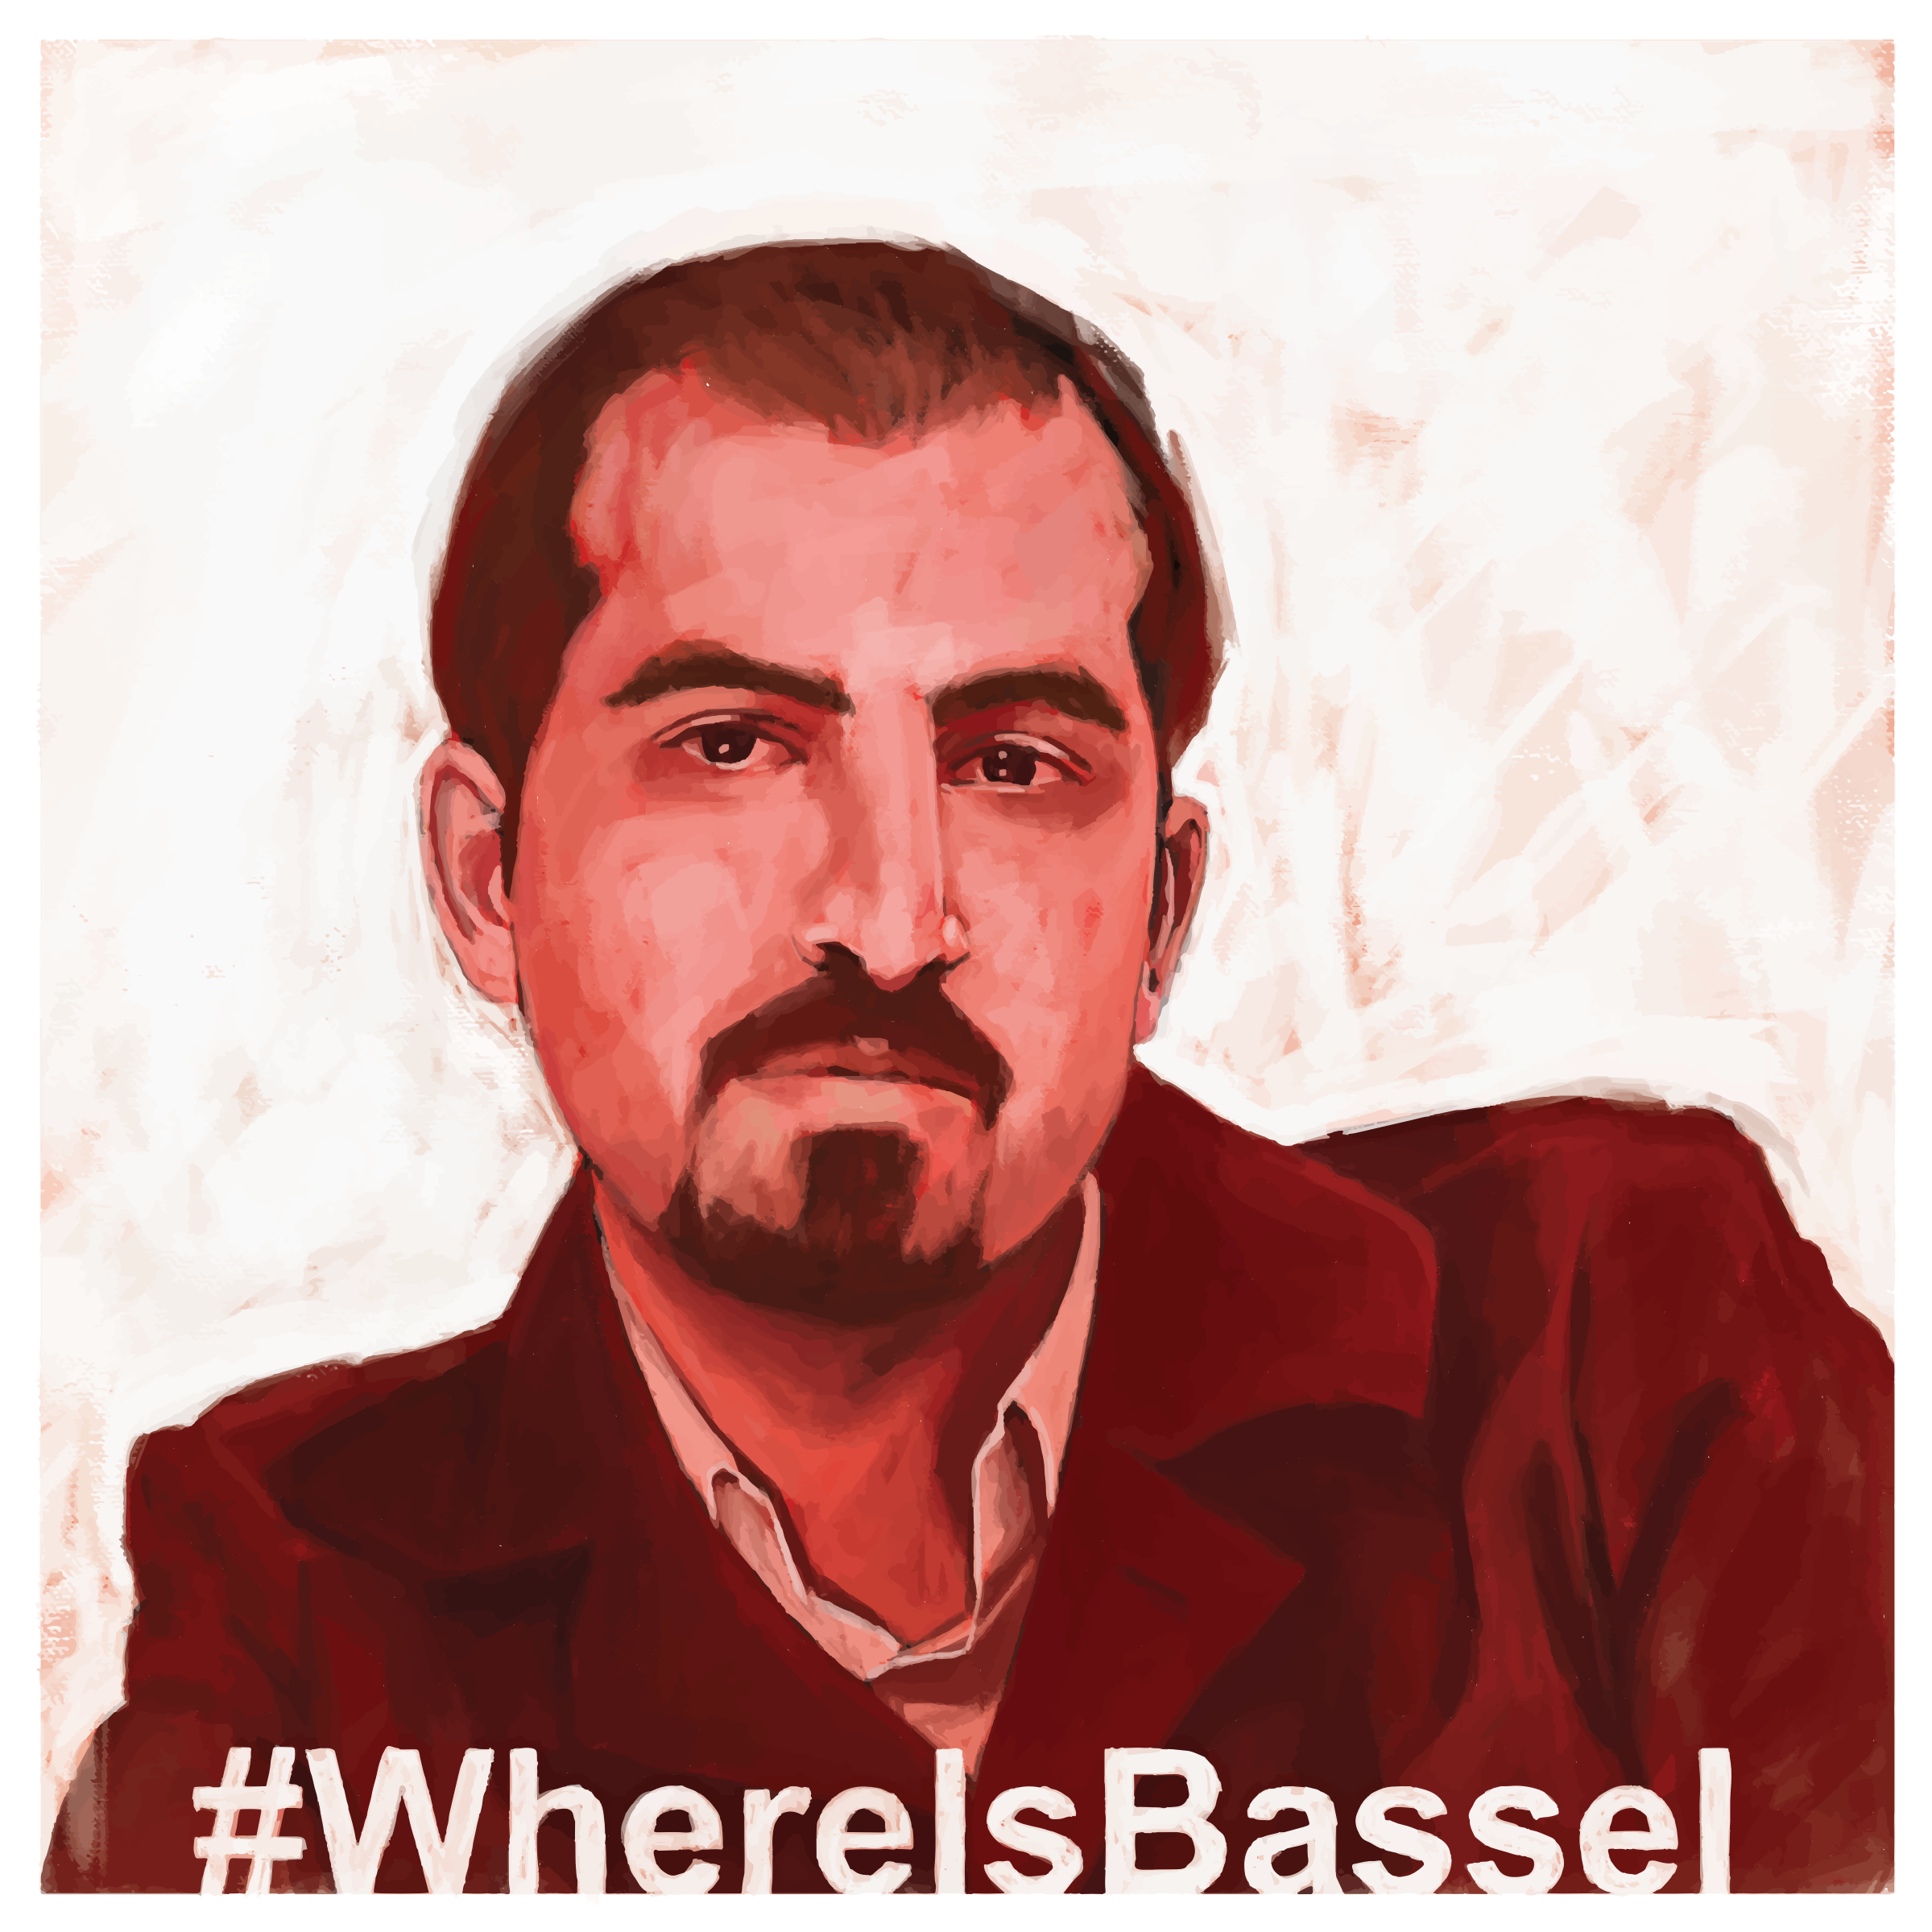 Bassel Anonymous Painting by GDJ